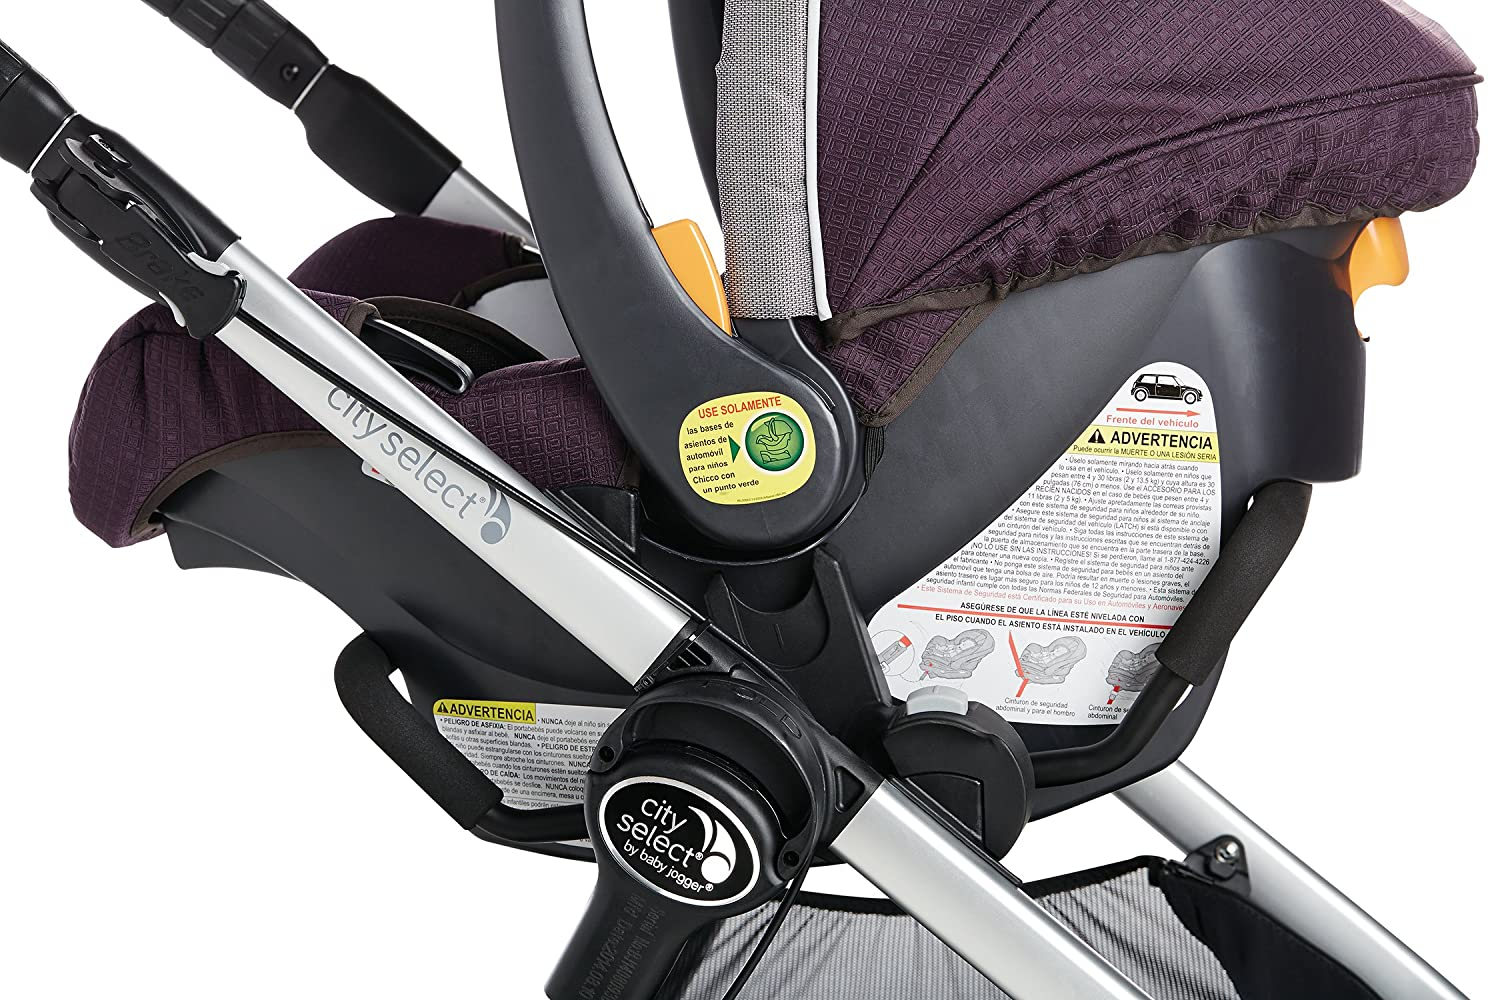 Amazon.com : Baby Jogger Car Seat Adapter (city select, city select